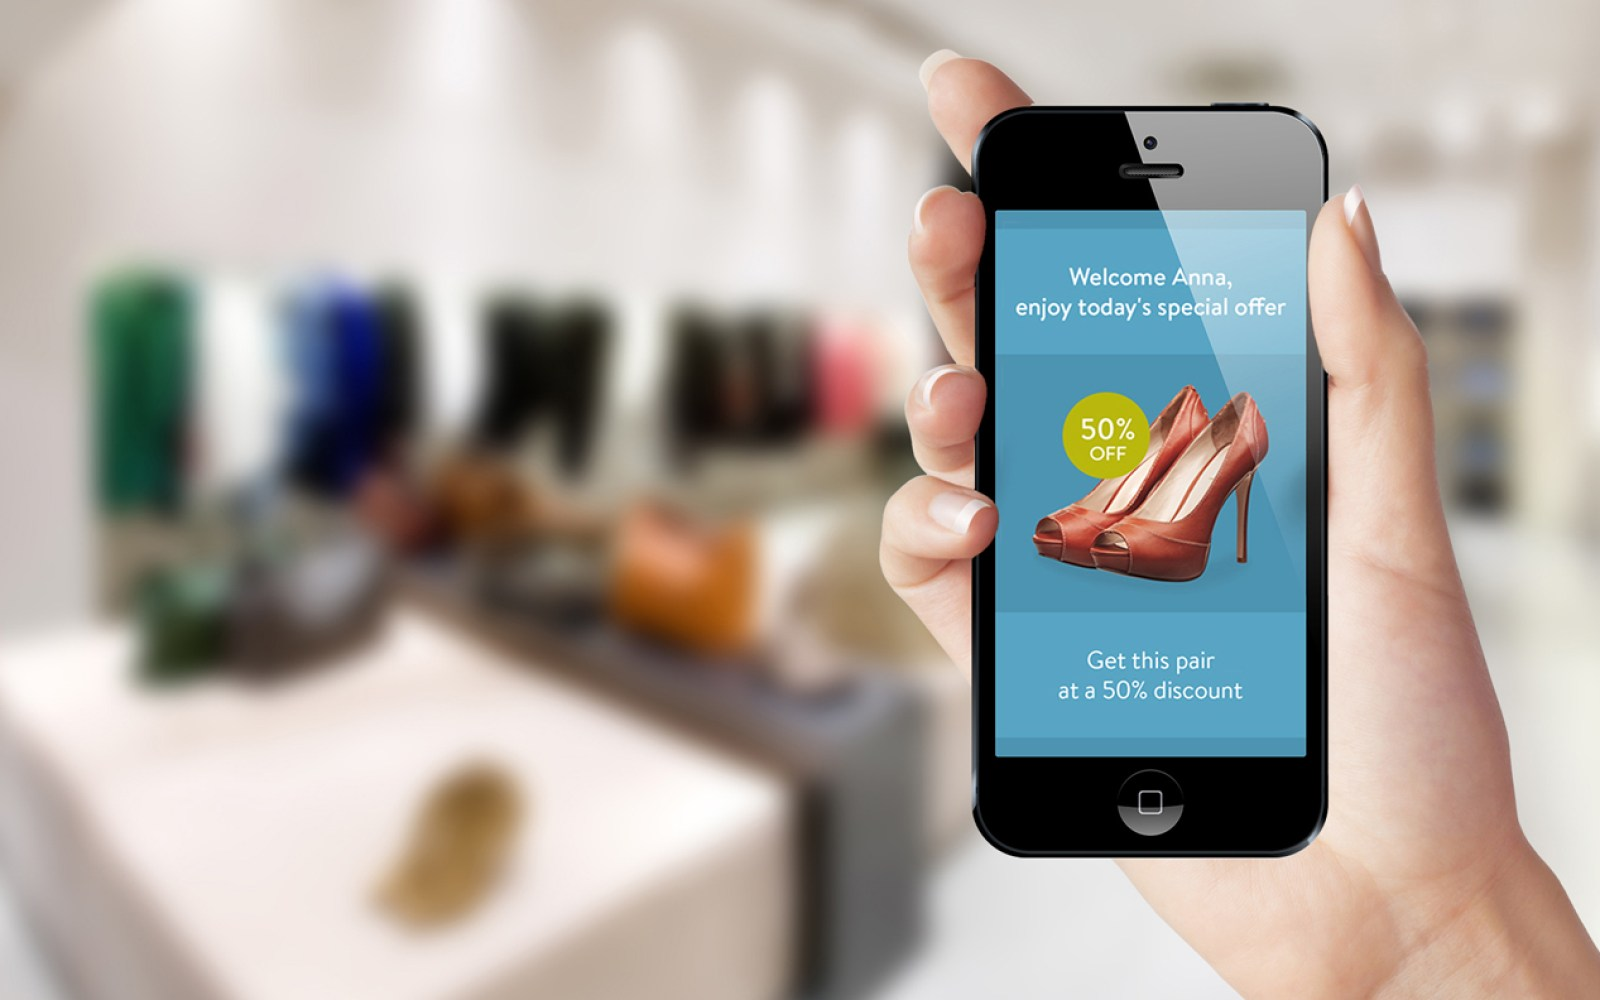 iBeacon briefing: What is it, and what can we expect from it?